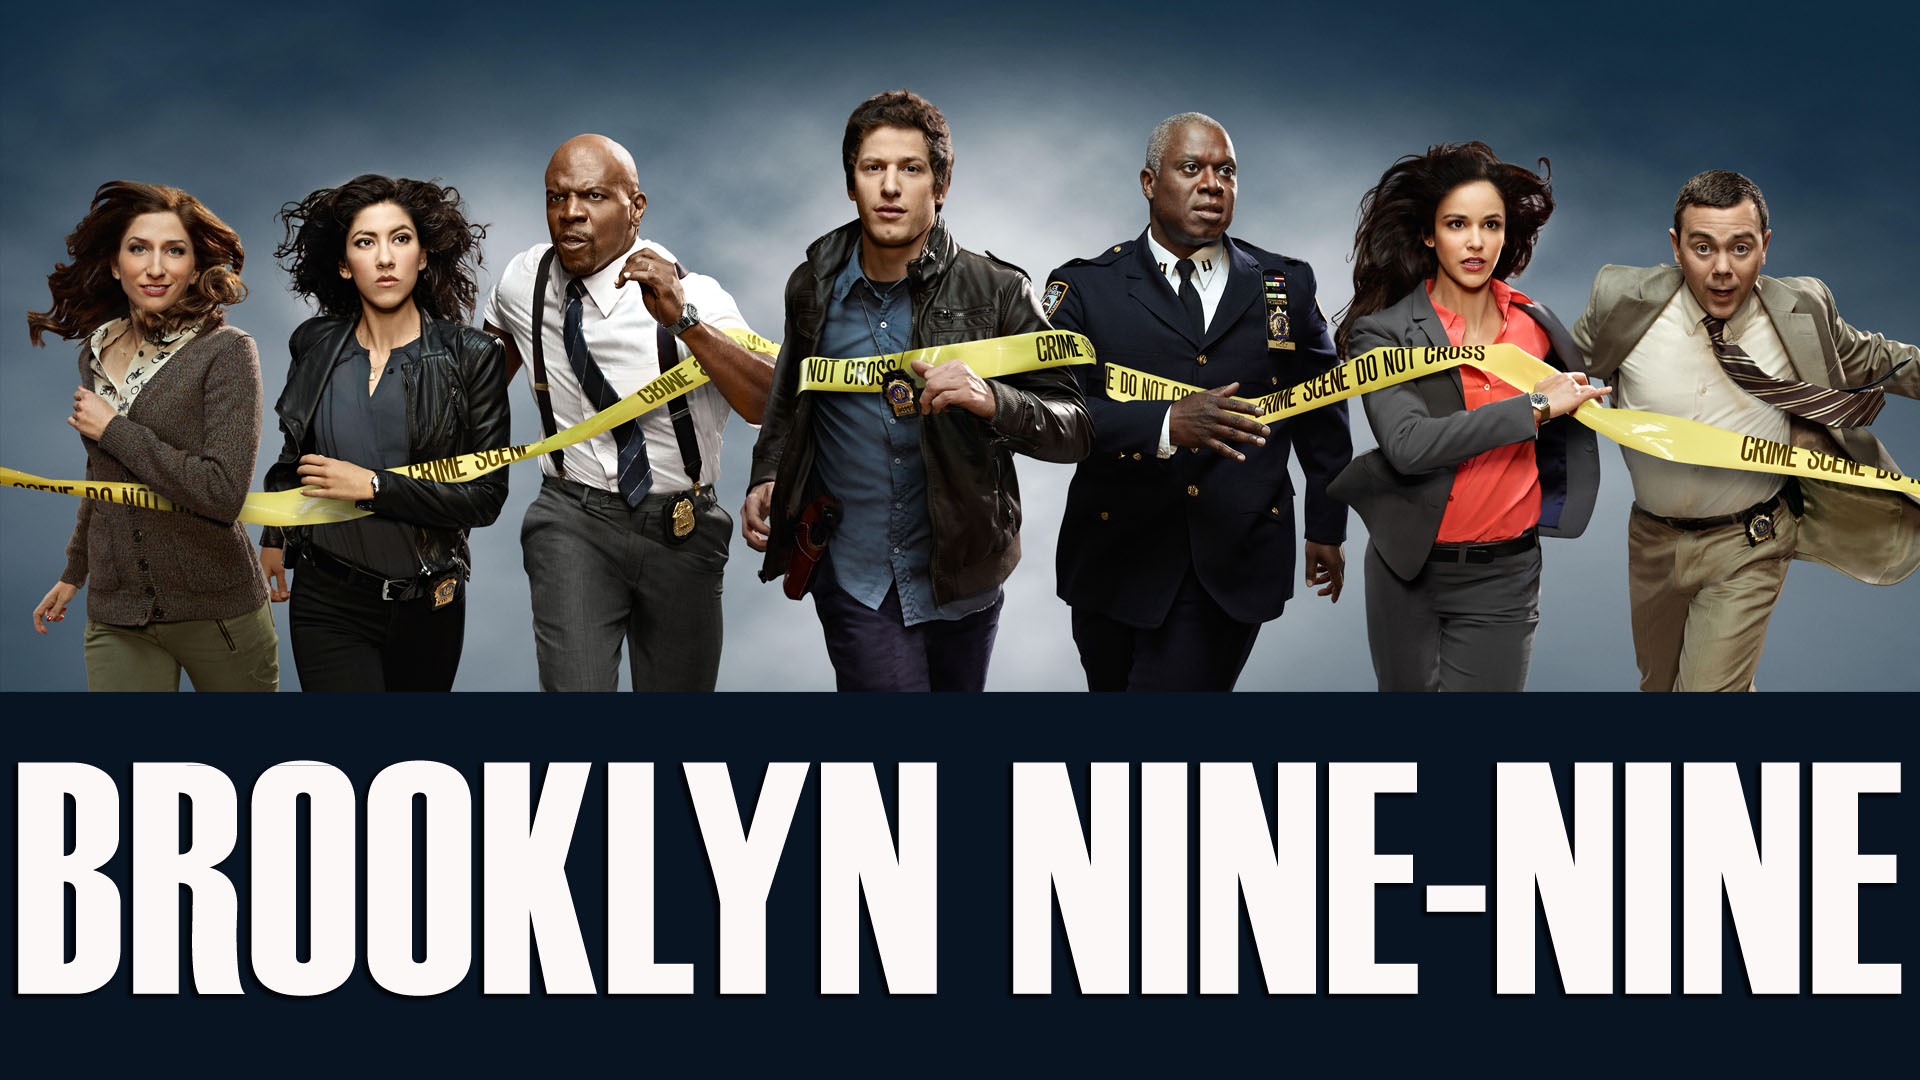 Brooklyn Nine Nine Wallpapers Pictures Images 1920x1080